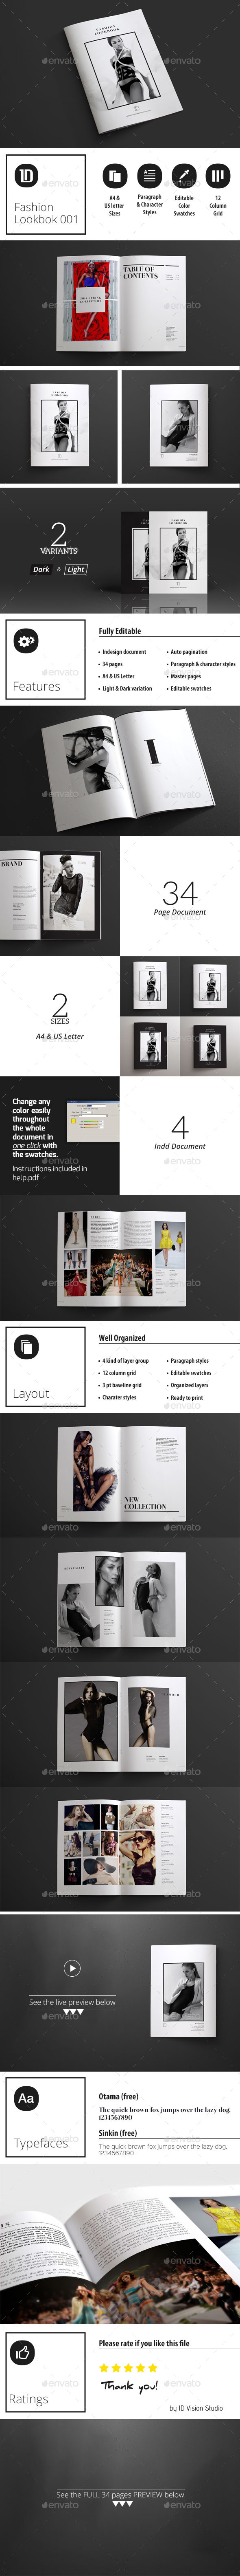 GraphicRiver Fashion Lookbook 001 11062782